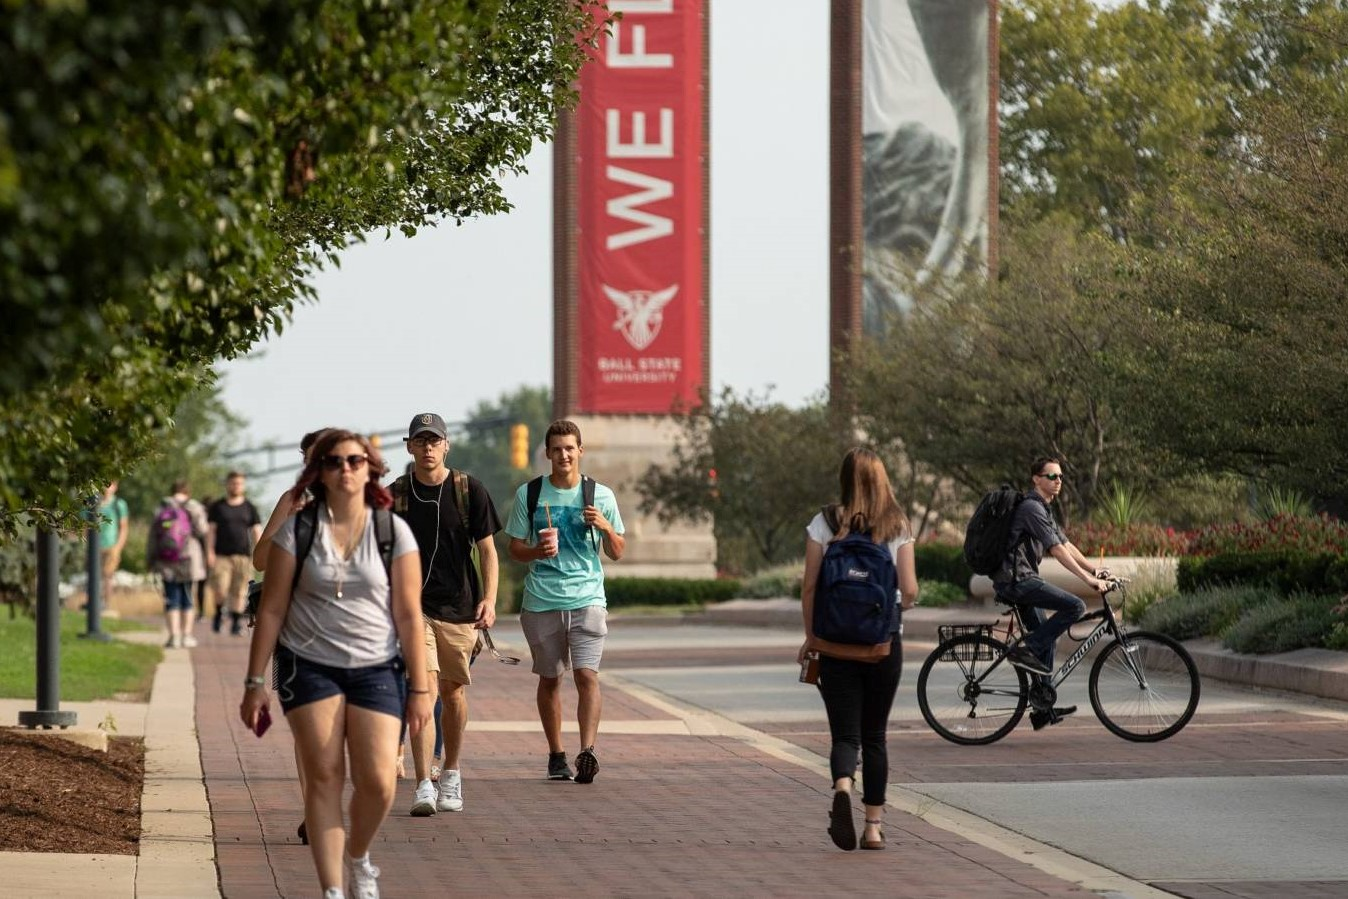 Students walk outside on a warm day at the Ball State University campus.